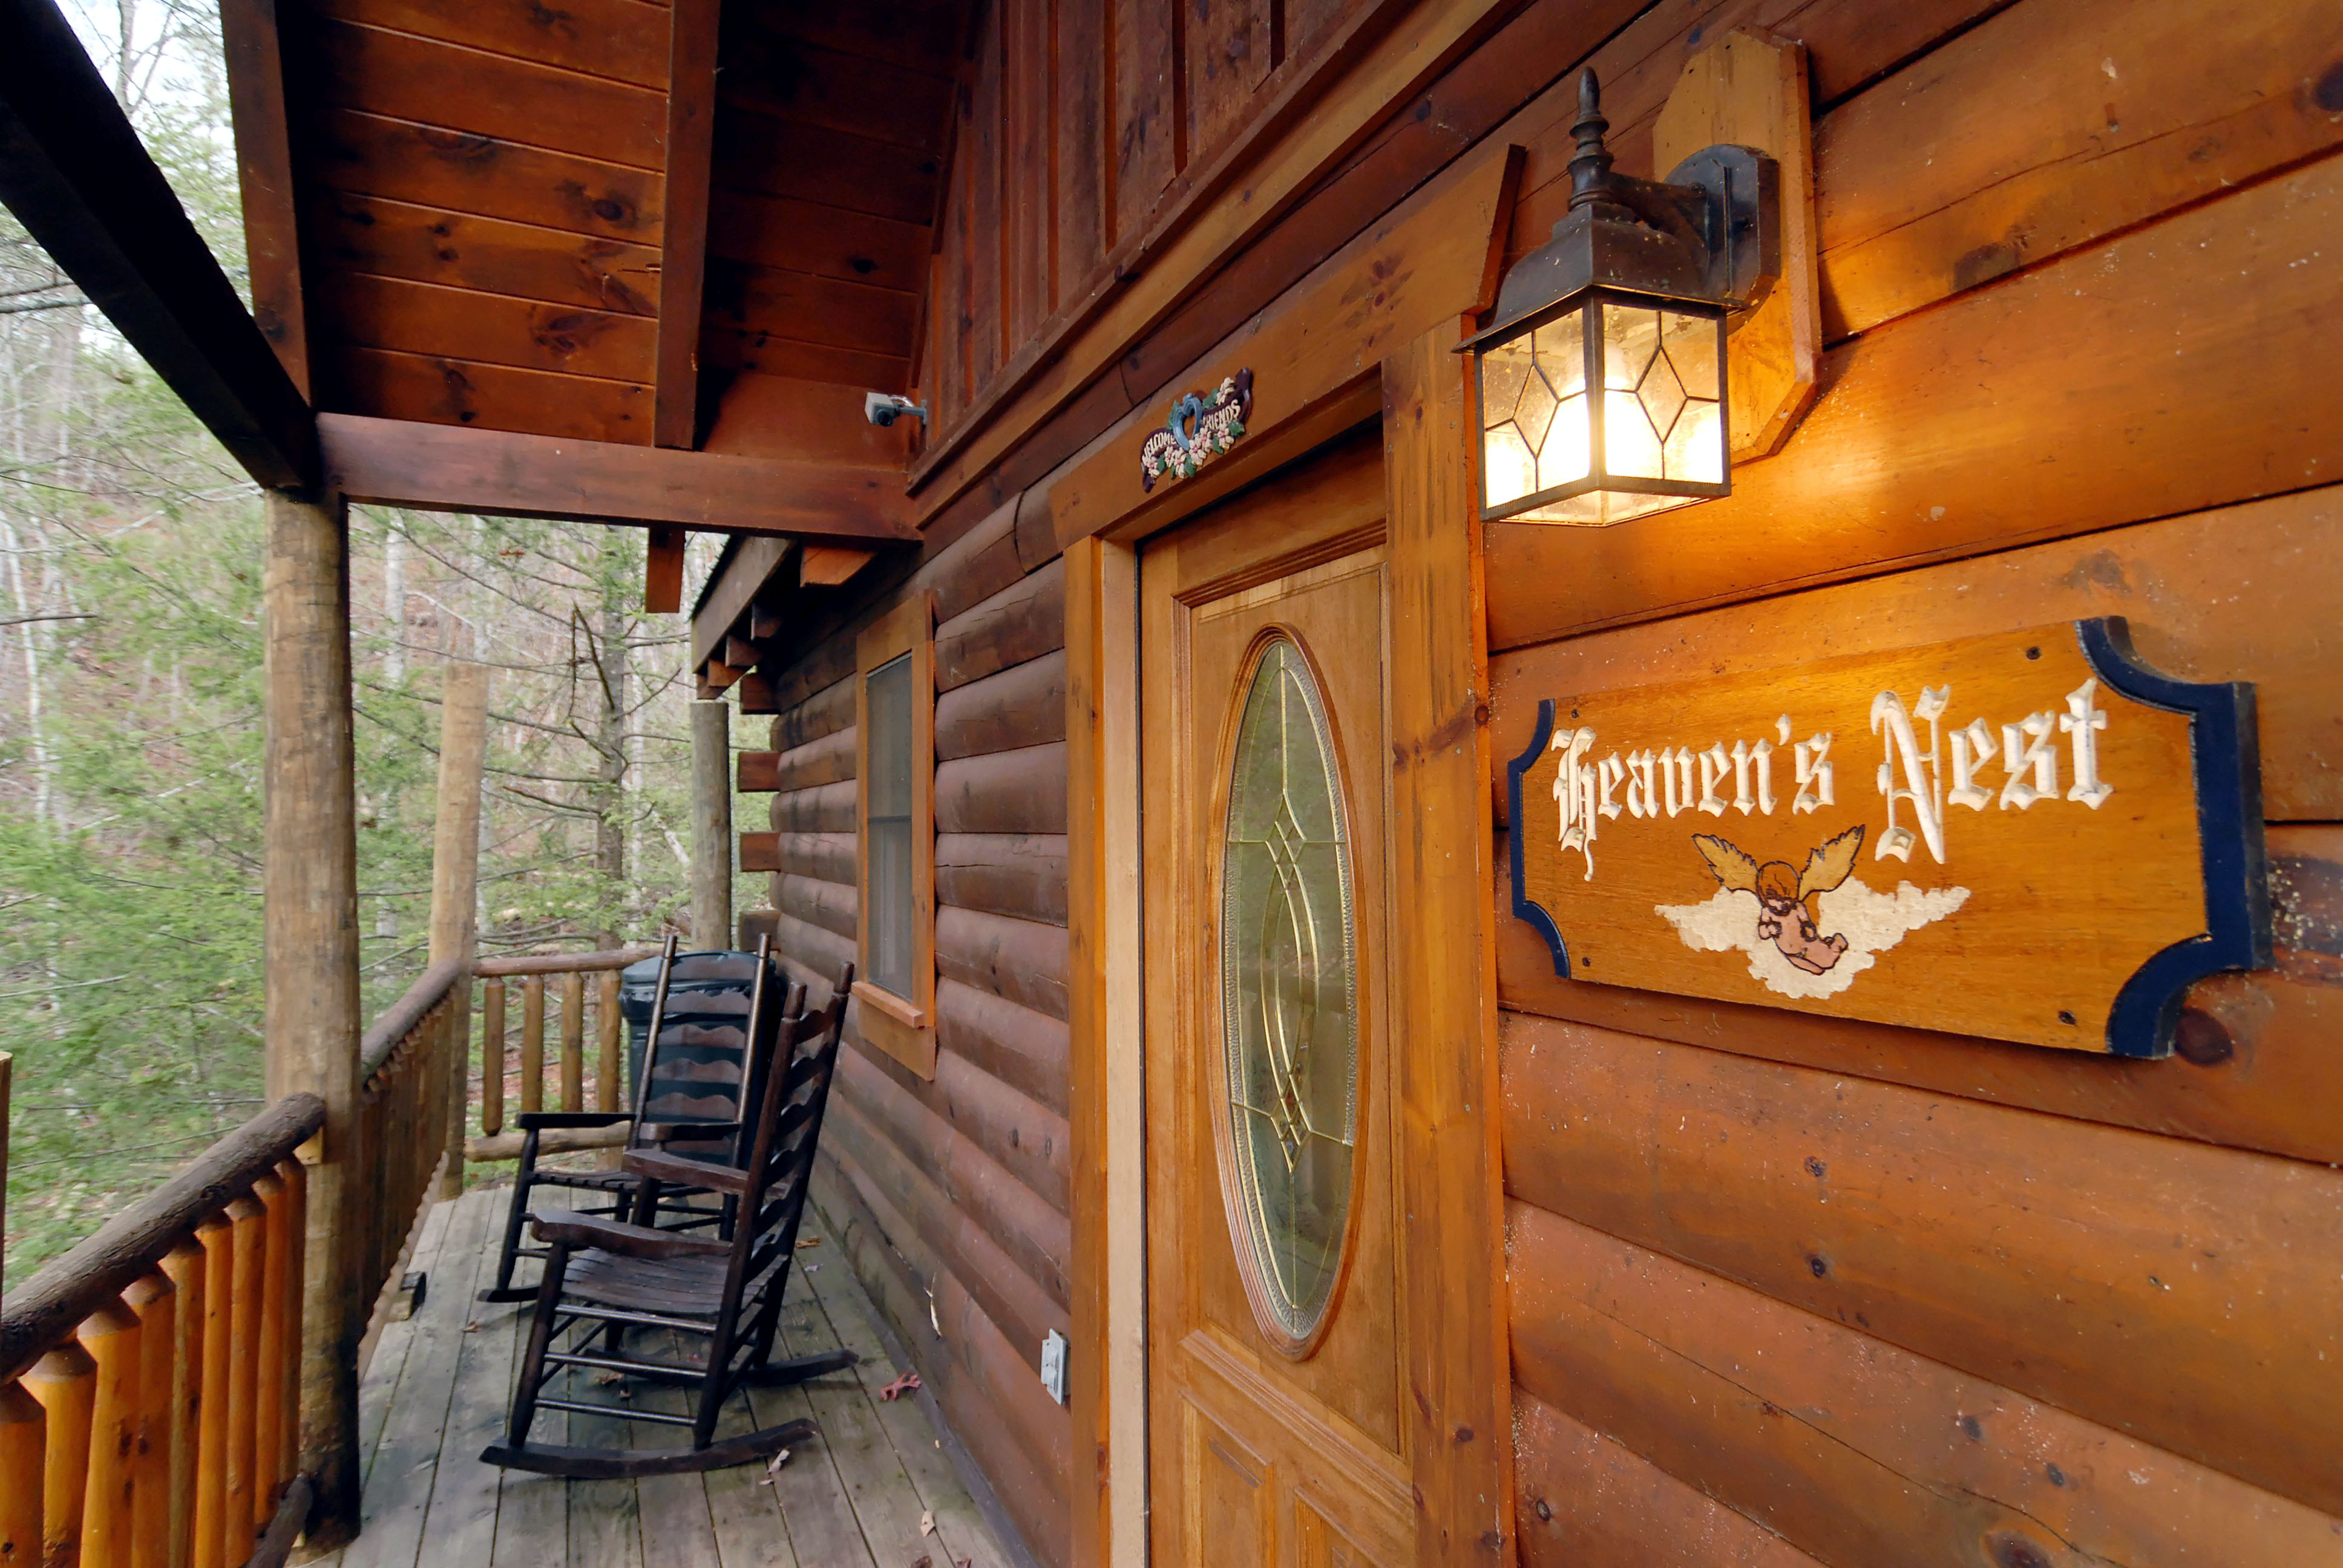 settg rustic rentals cabins cbin pigeon for cabin bth forge comfortbly near private pool gatlinburg tennessee rent in tn rental smoky mountain mttresses indoor hlf mountains